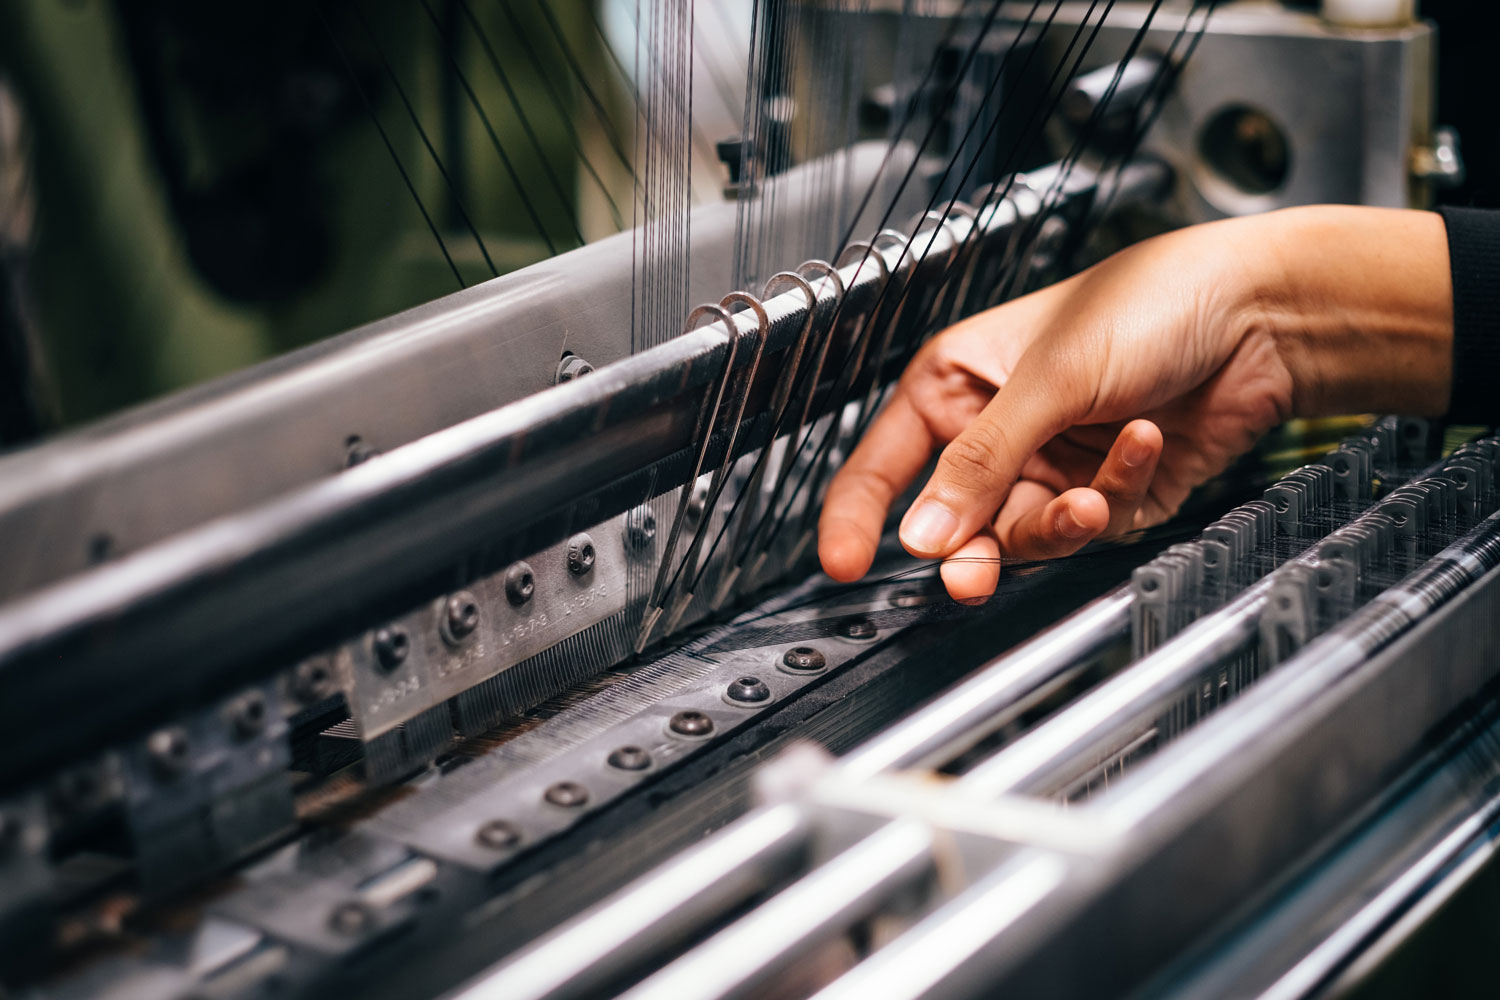 a person placing threads in an industrial sewing machine